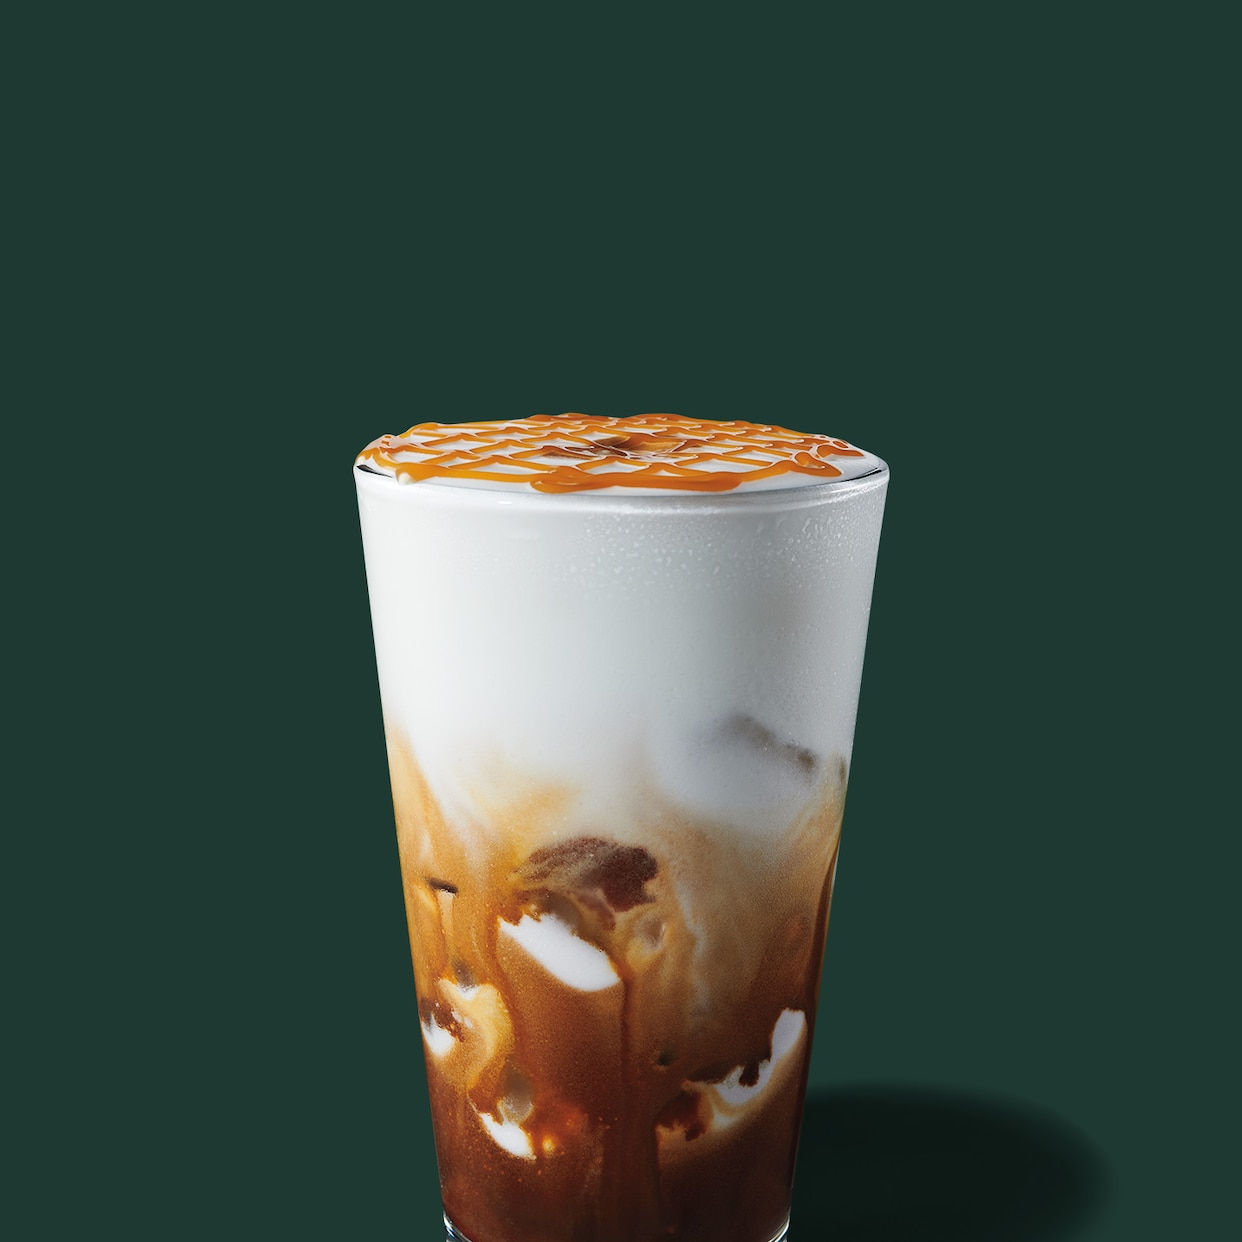 Iced Caramel Cloud Macchiato Contains Eggs Starbucks Coffee Company